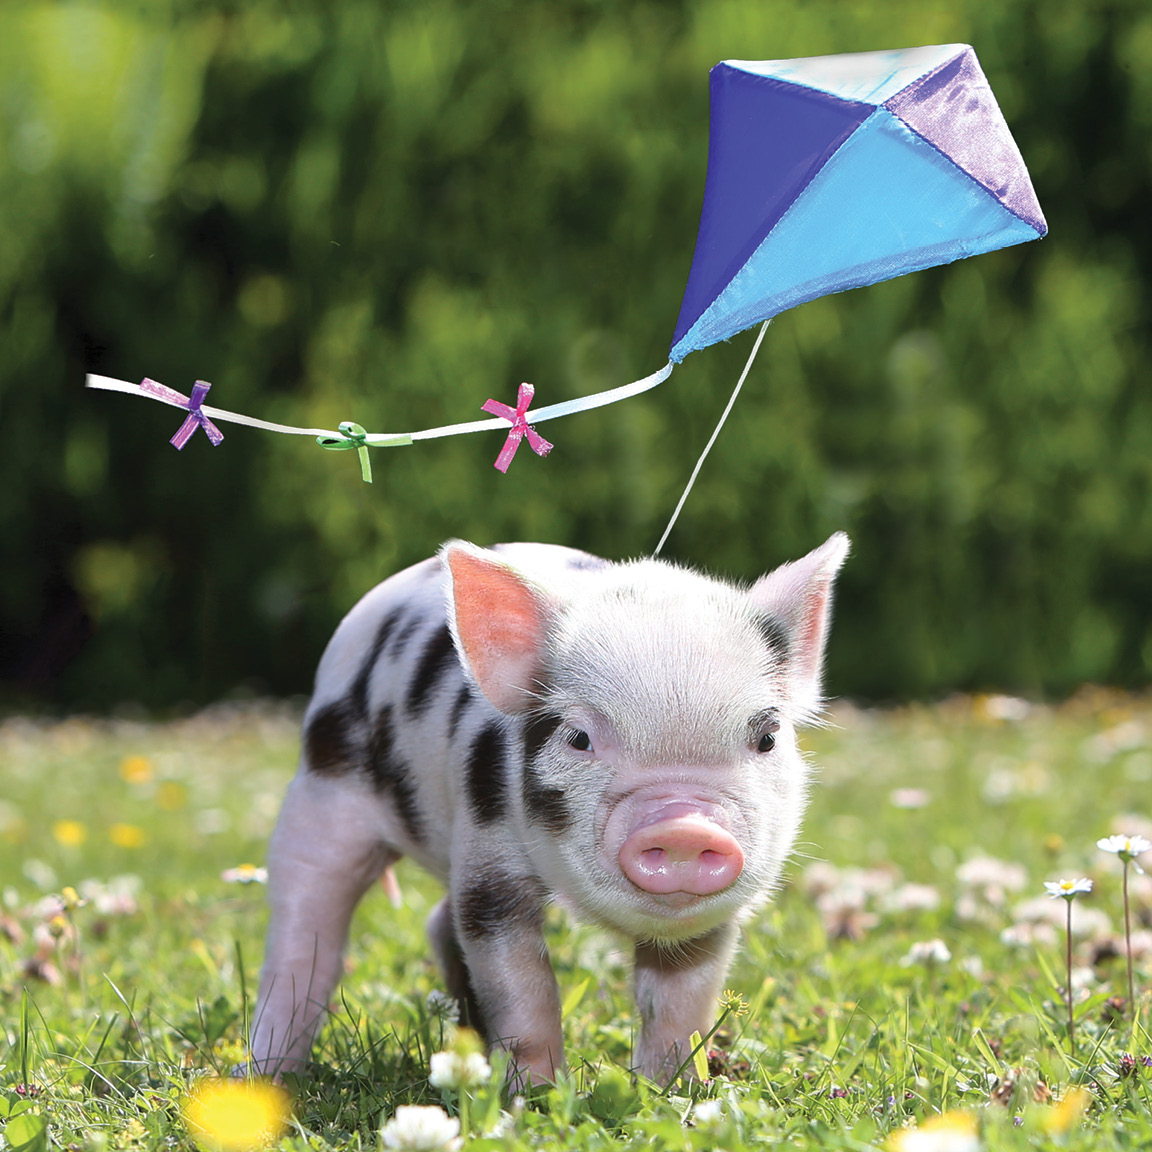 A nice piggy pic to brighten your day on this kite flying kind of Saturday. Hopefully well be flying high with visitors again in the not too distant future #pennywellpigs #halfterm #piggycuddles @VisitDevon @DevonTopDaysOut @visitsouthdevon @visittotnes @VisitDartmoor